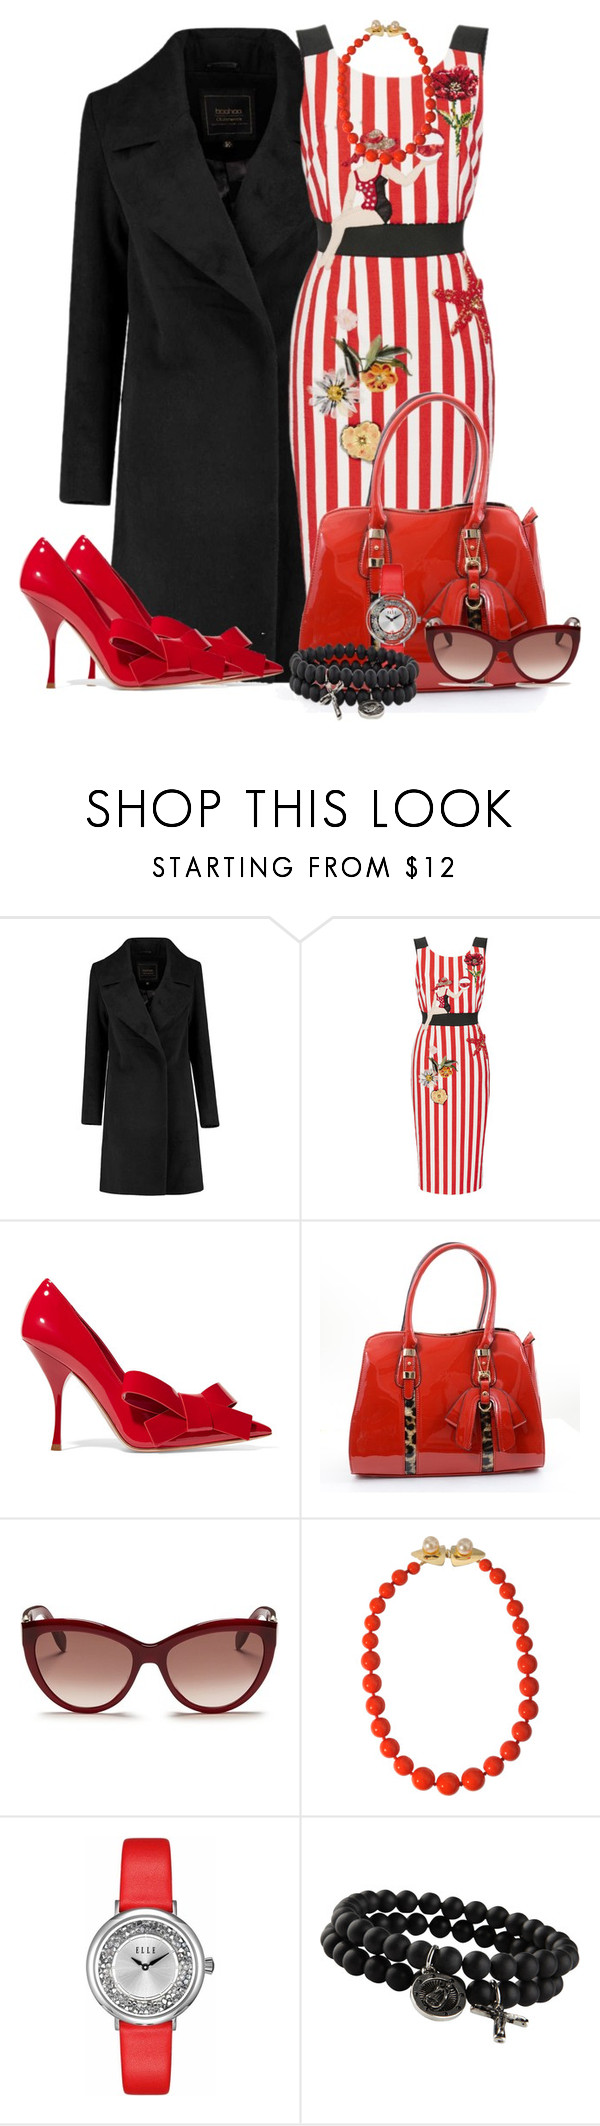 """Rockabilly Glam"" by ljbminime ❤ liked on Polyvore featuring Dolce&Gabbana, Miu Miu, Alexander McQueen, Helene Zubeldia, ELLE Time & Jewelry, ALDO, women's clothing, women, female and woman"